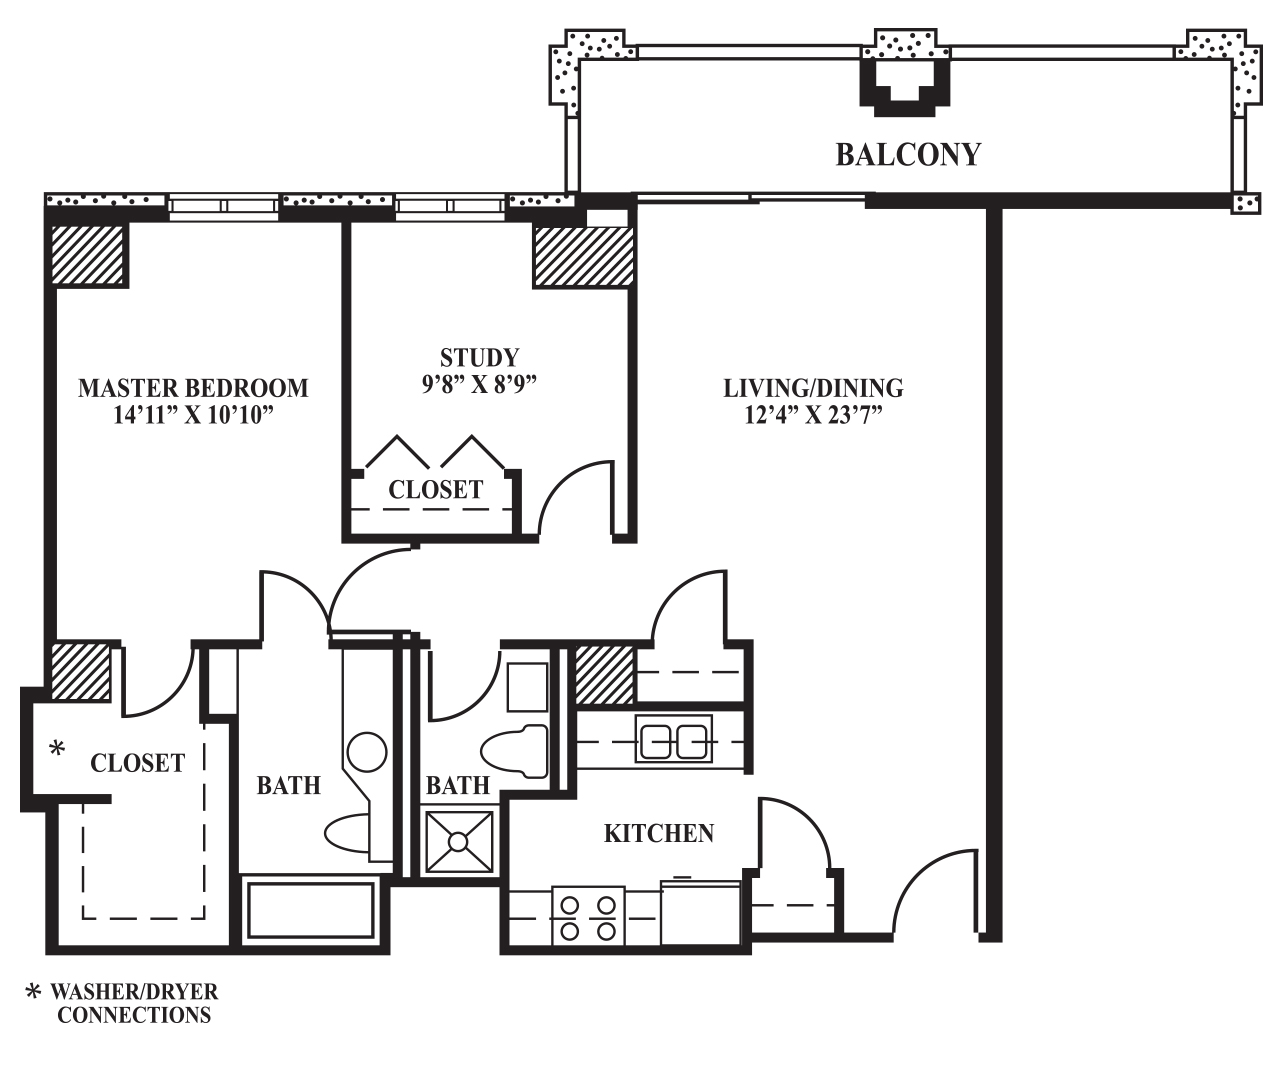 The Highlight Of This Unit Would Be Additional Study Measuring 9 8 X8 With An Closet Floor Plan Is Perfect For Our Residents Seeking